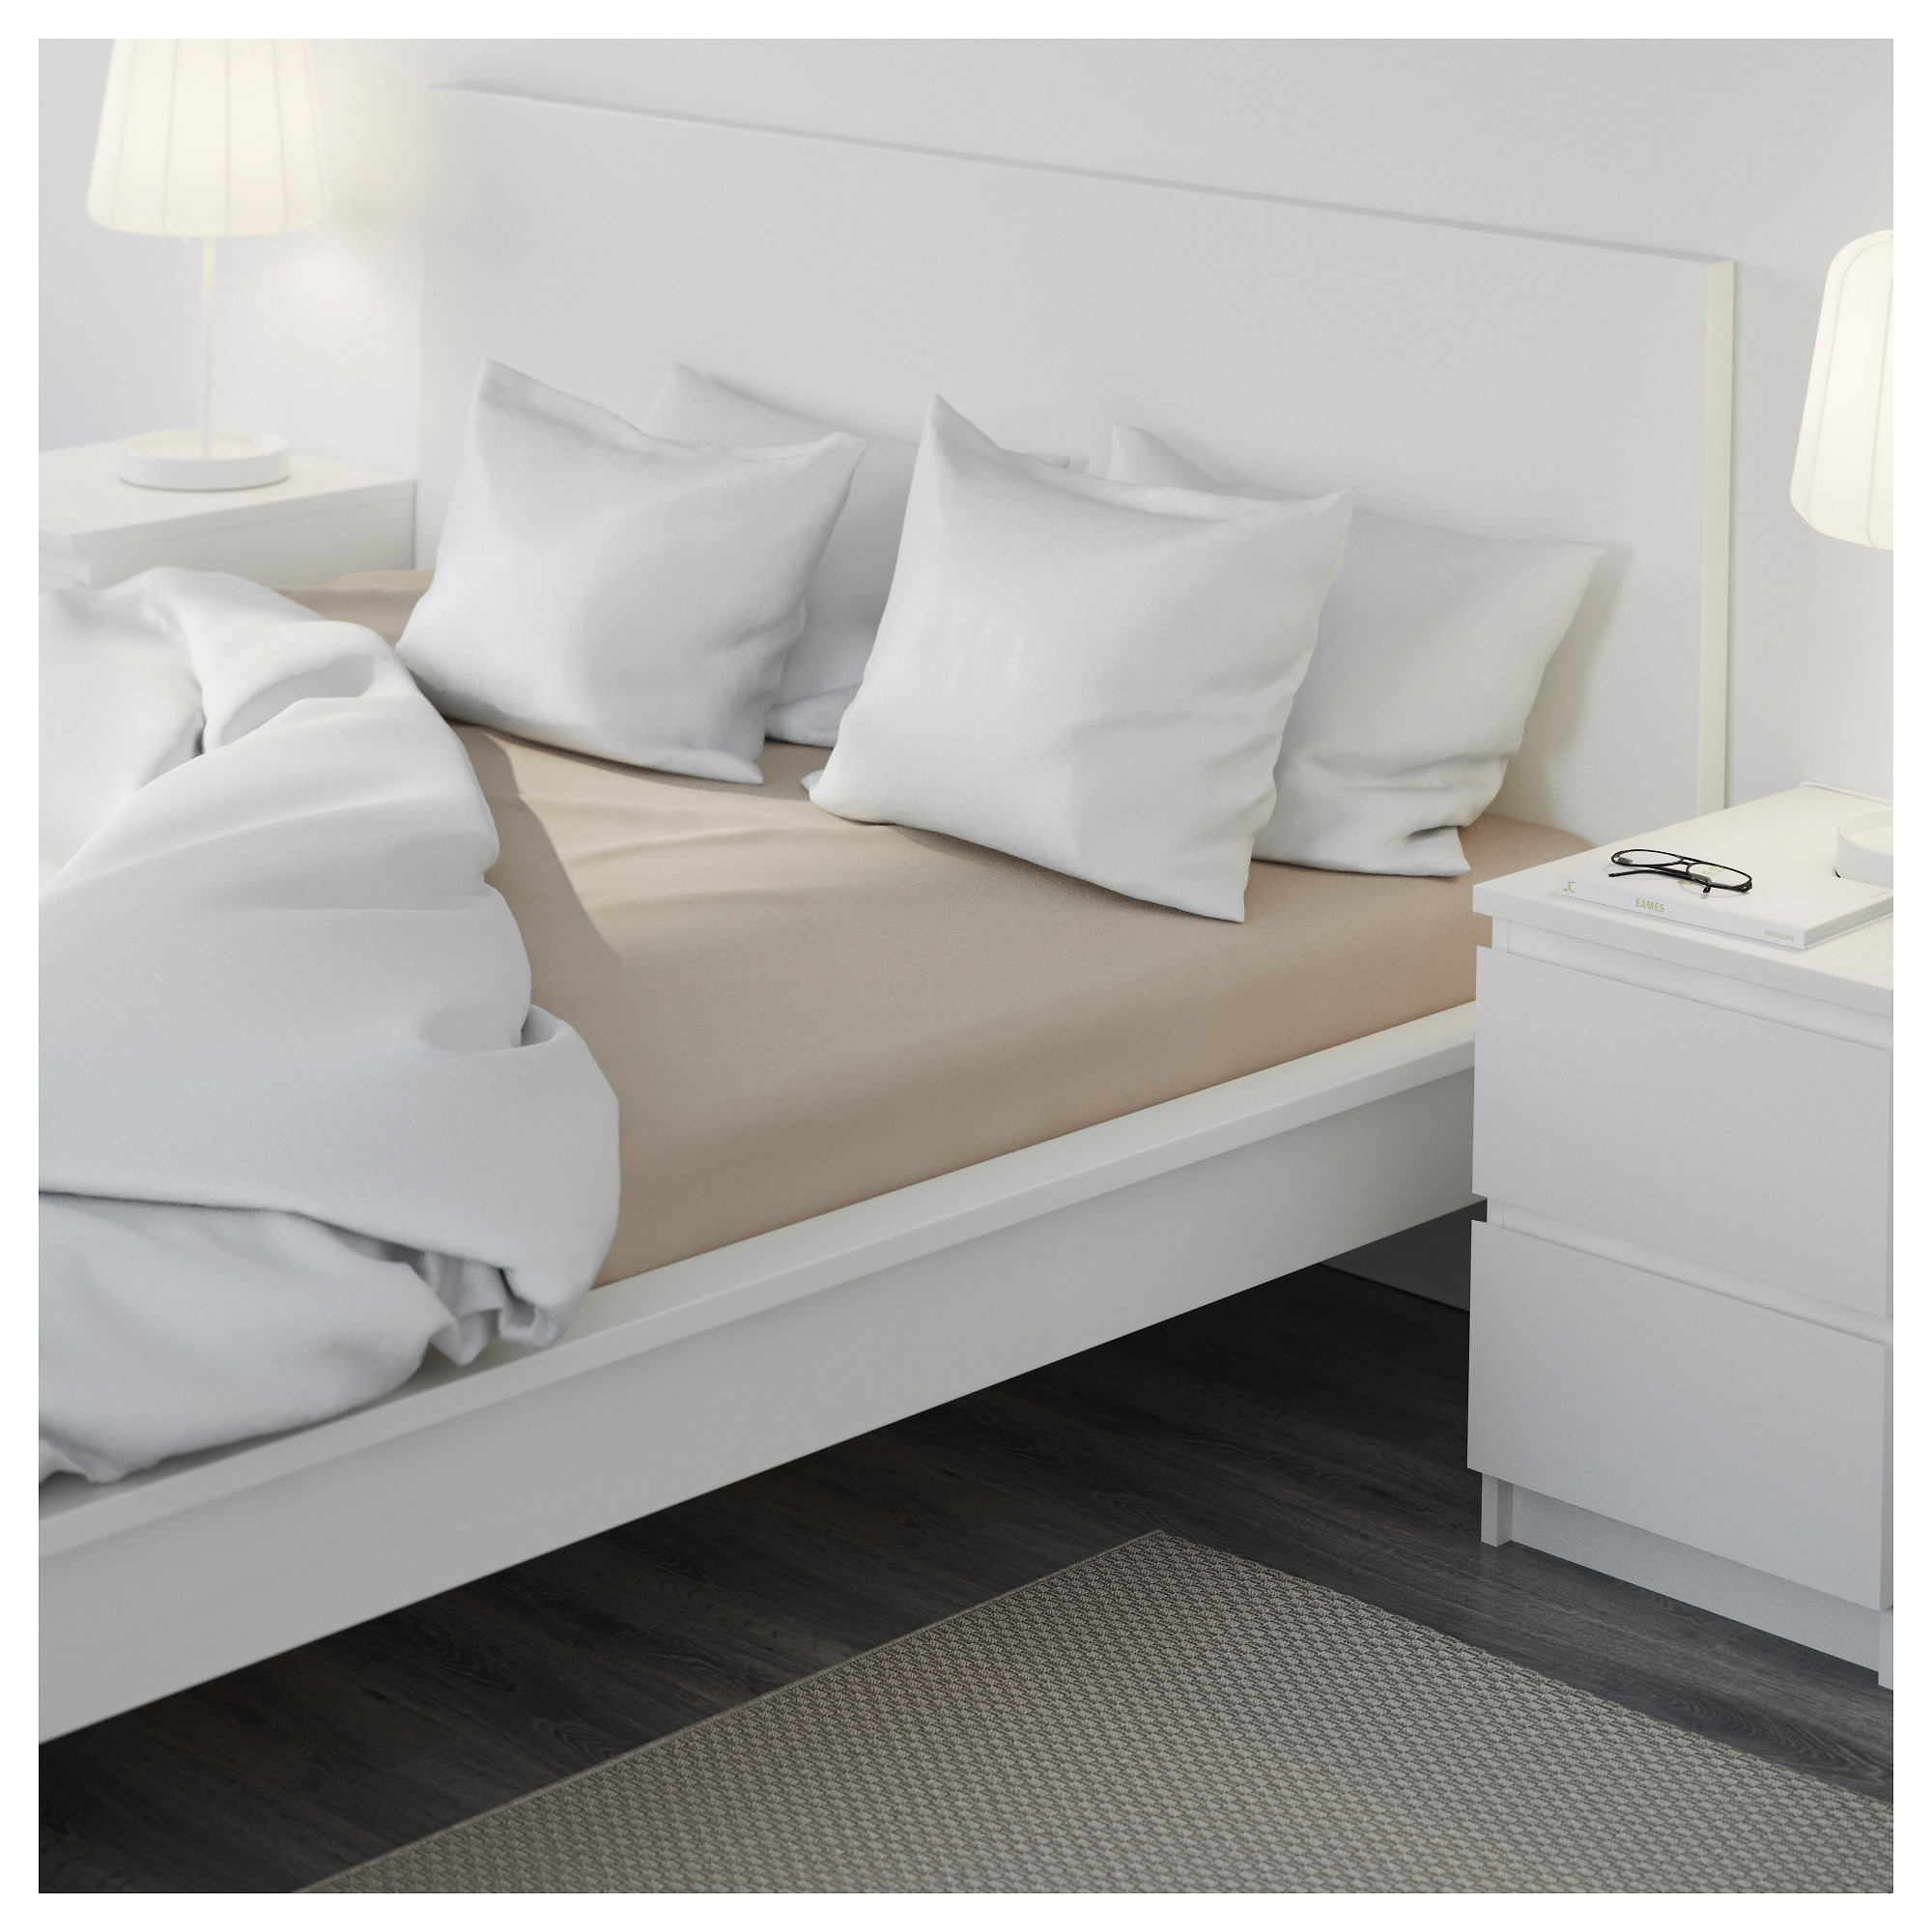 MALM Bed frame, high - Full, -, white - IKEA